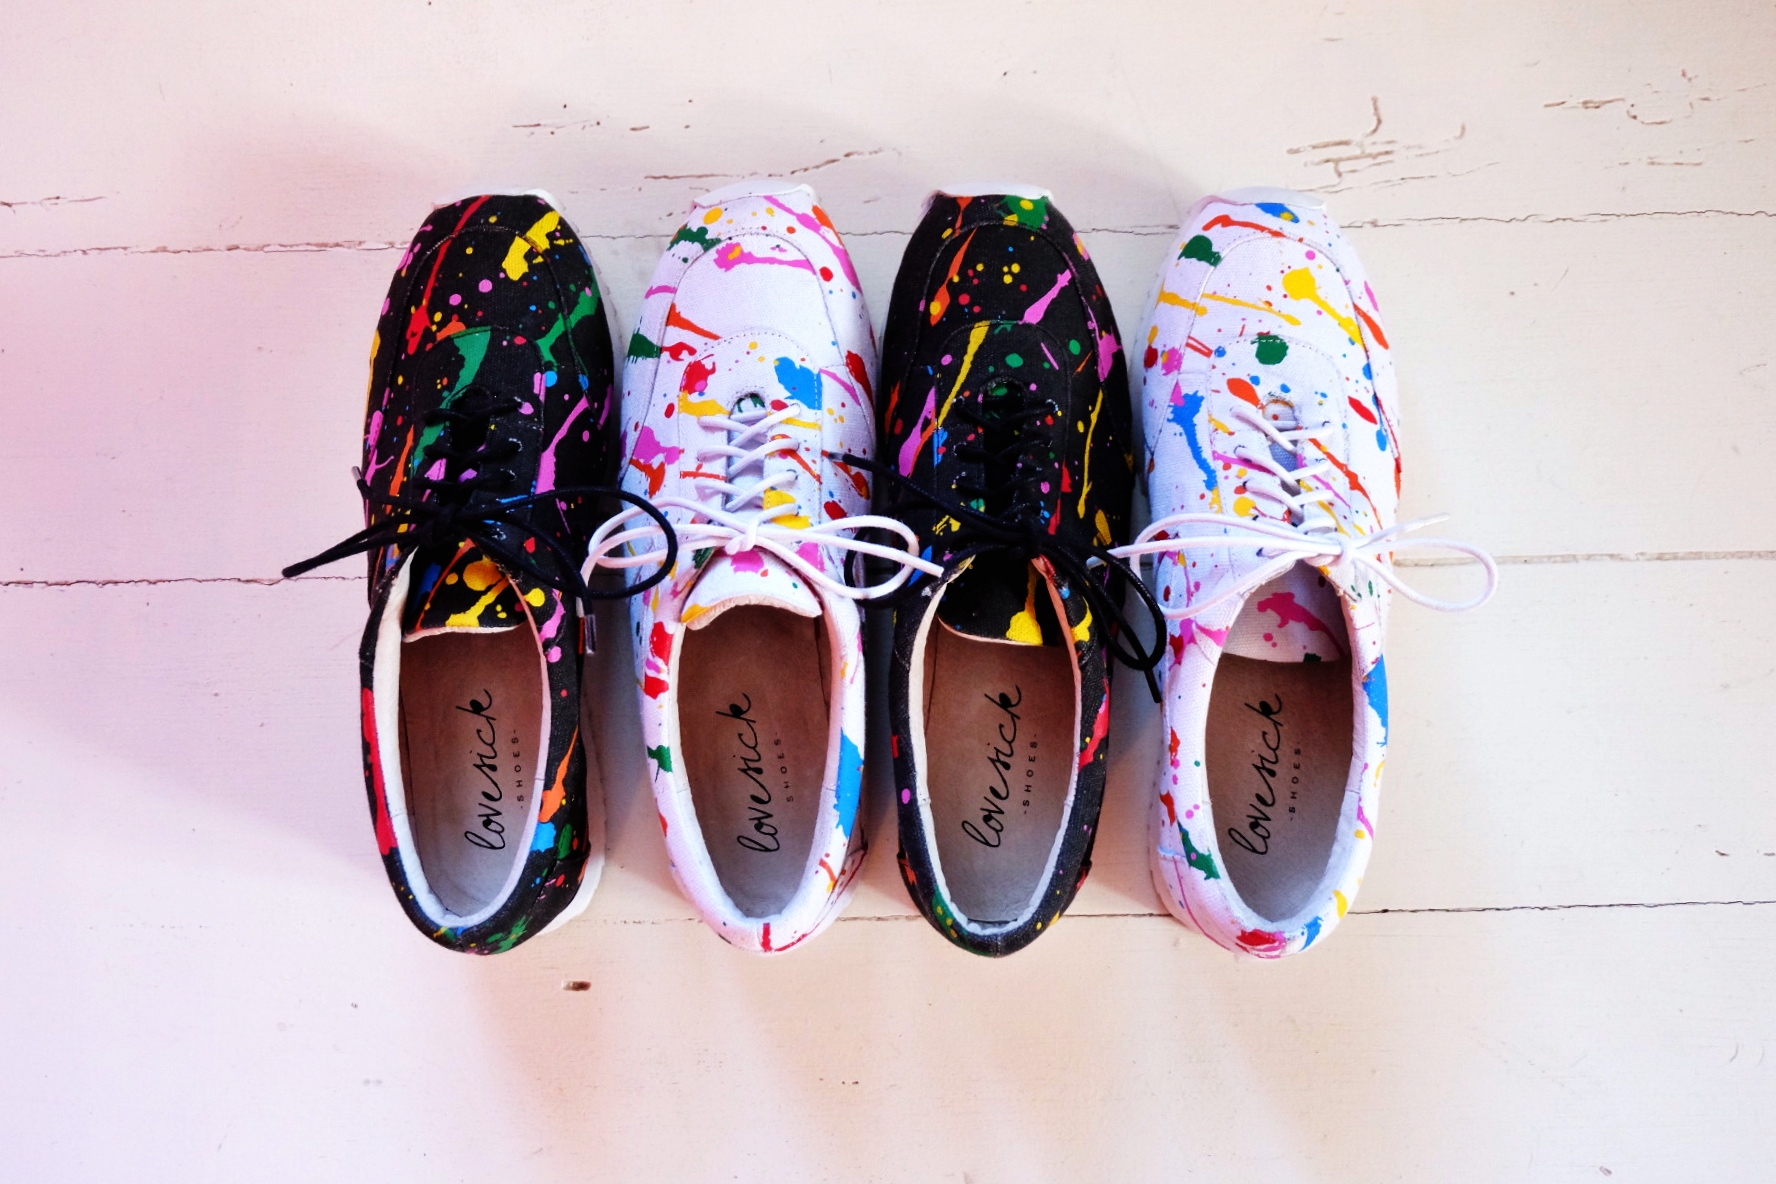 fun Felix shoes from Love Sick.  Love sick  is  Chaos and Harmony 's little sister.